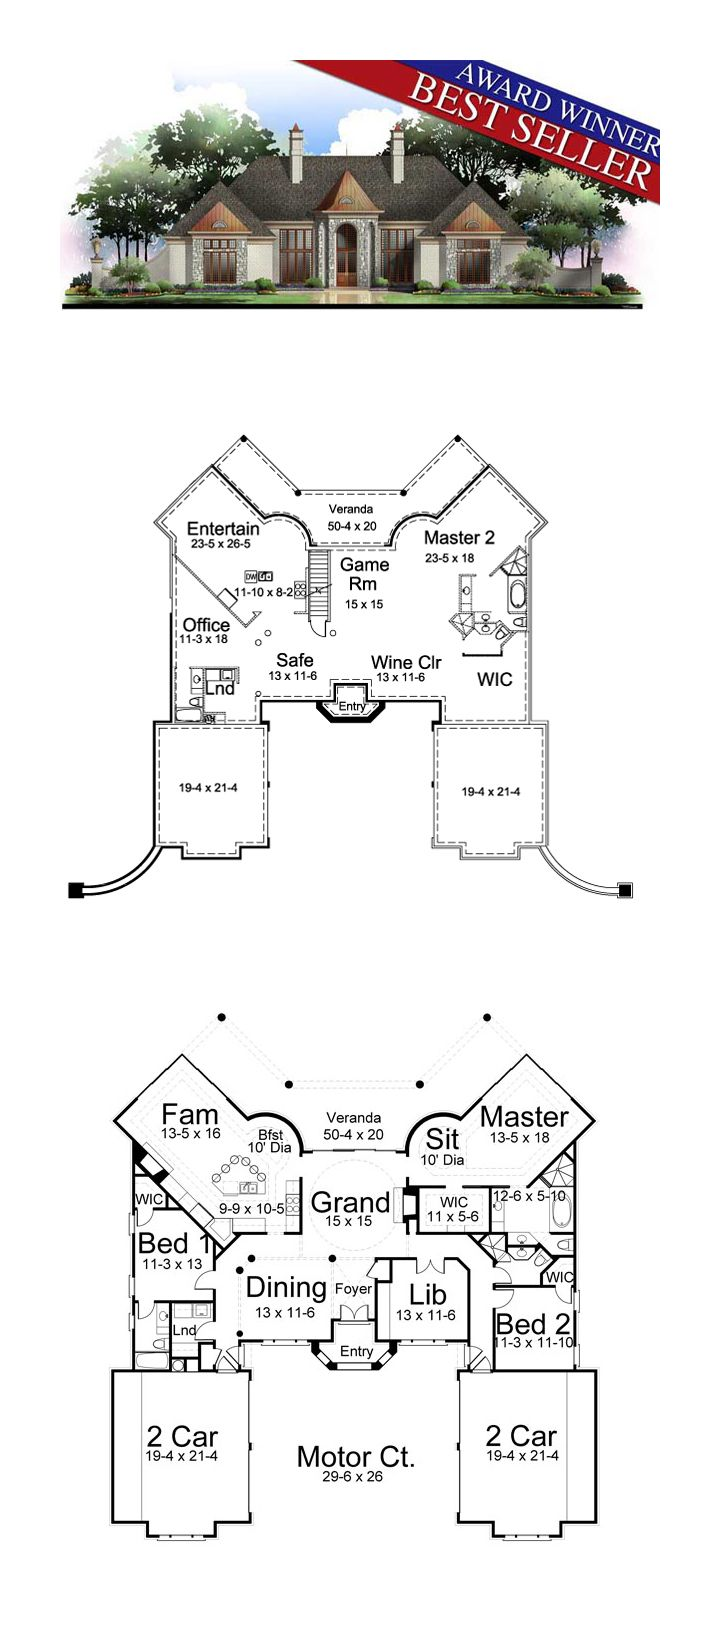 299 best house plans images on pinterest home plans house floor cool house plans offers a unique variety of professionally designed home plans with floor plans by accredited home designers styles include country house